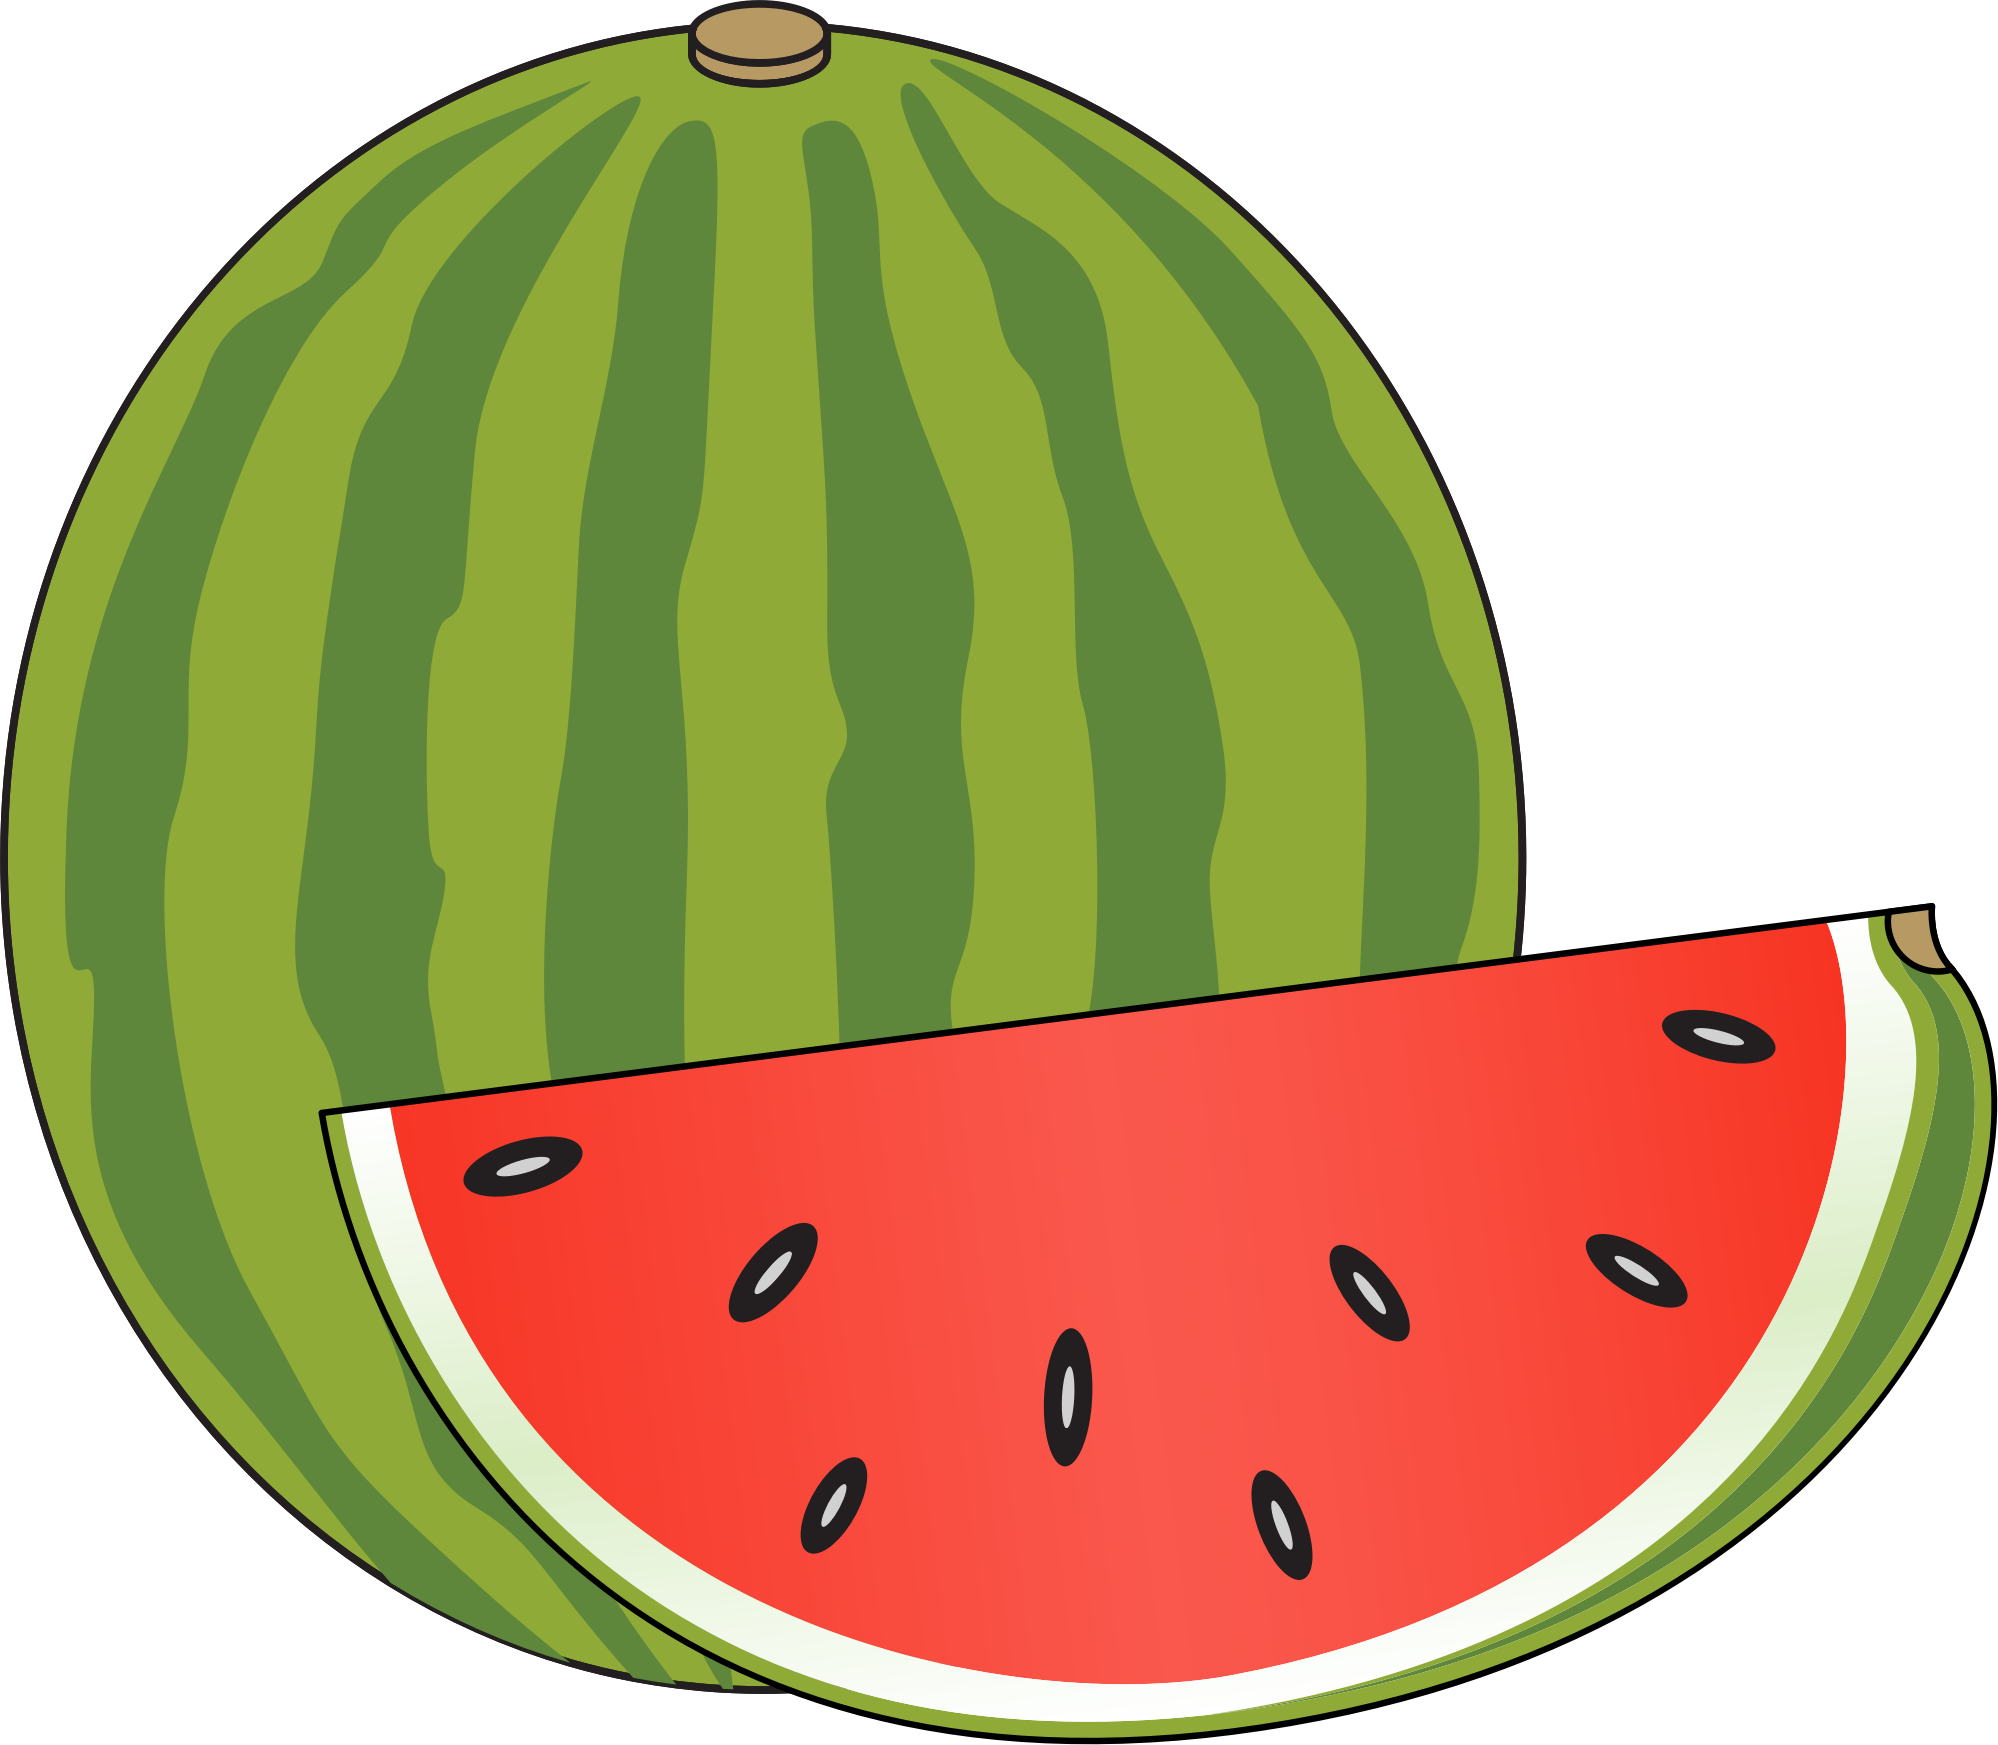 Watermelon clipart small watermelon. Big image png